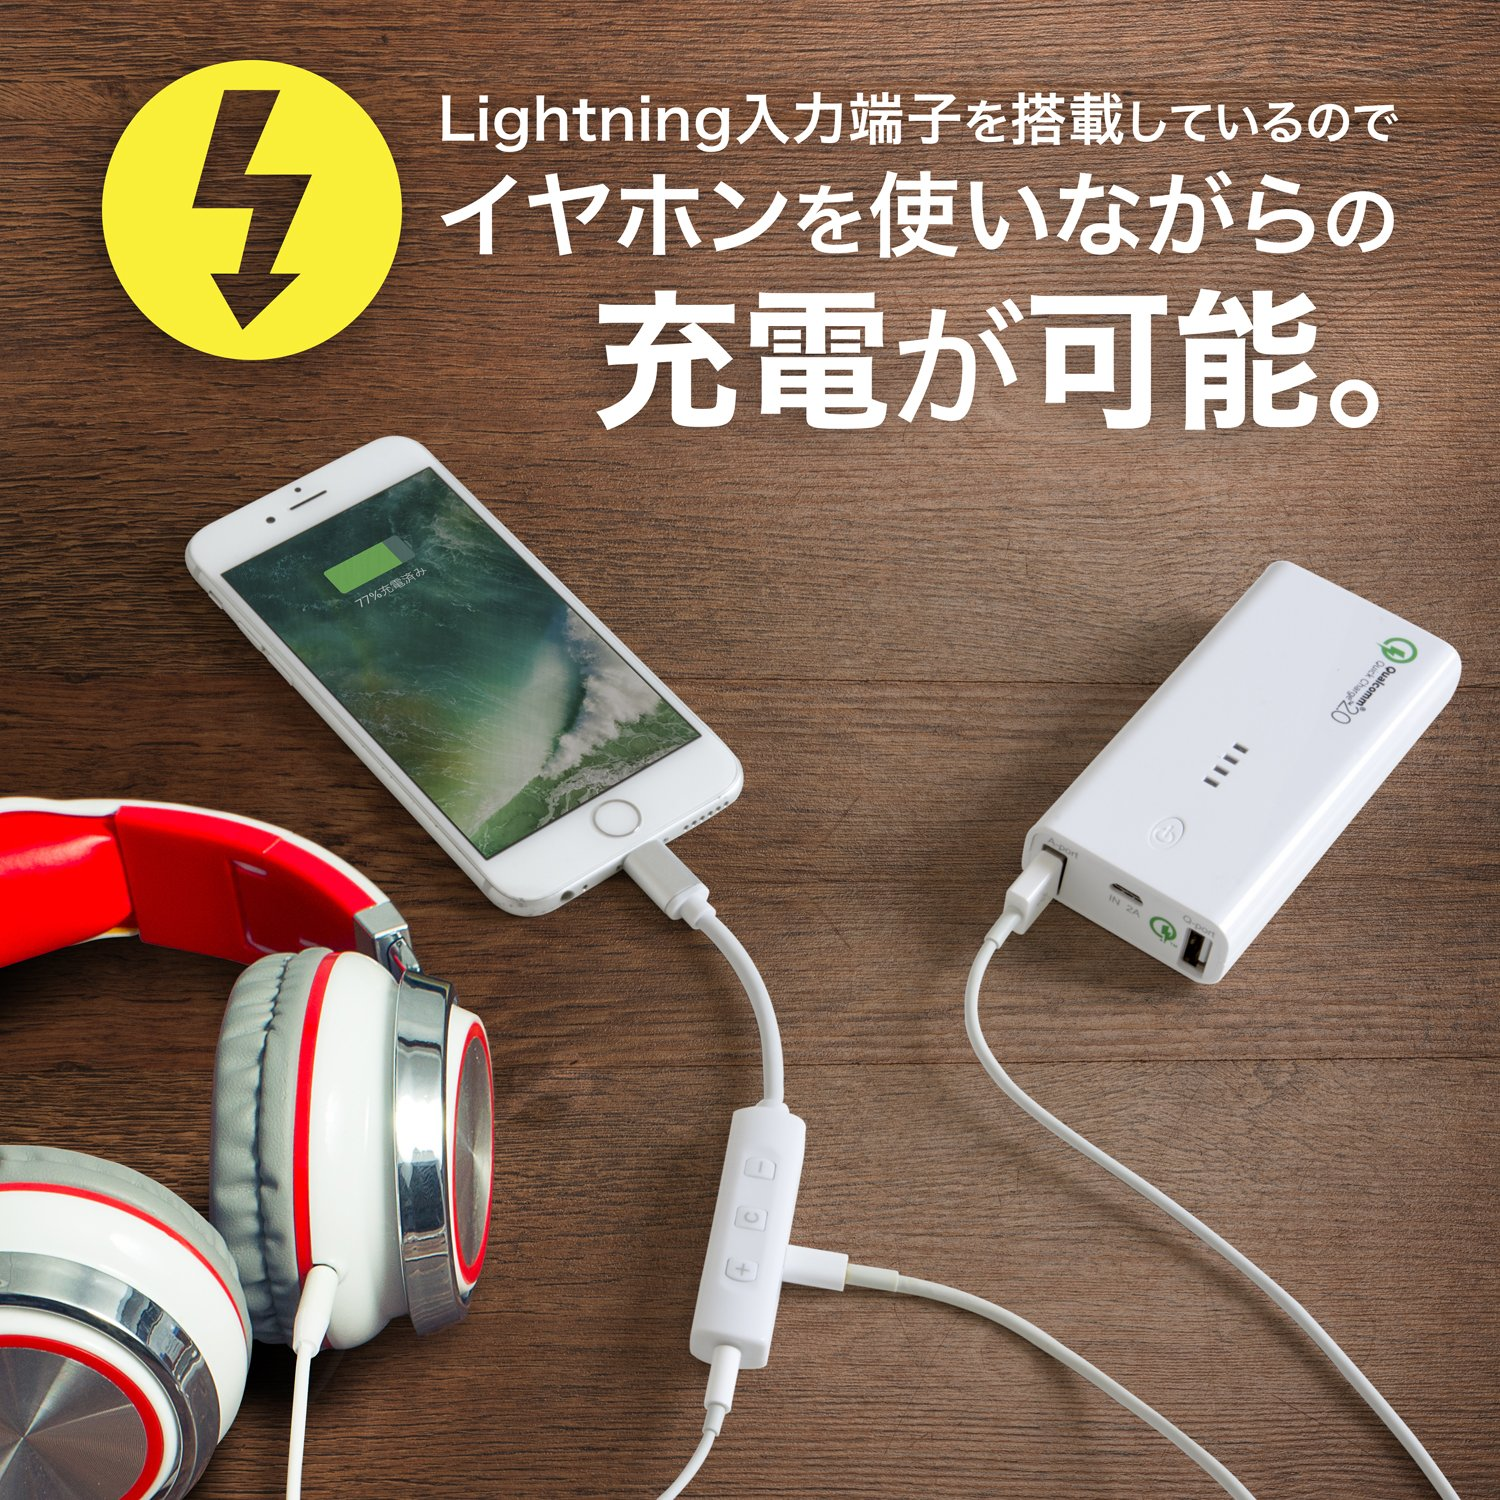 iPhone 7 Lightning to 3.5mm Power Audio Charge Headphone Jack Adapter Cable Microphone + Sync Support [MFi Certified] by Nitika (Image #3)